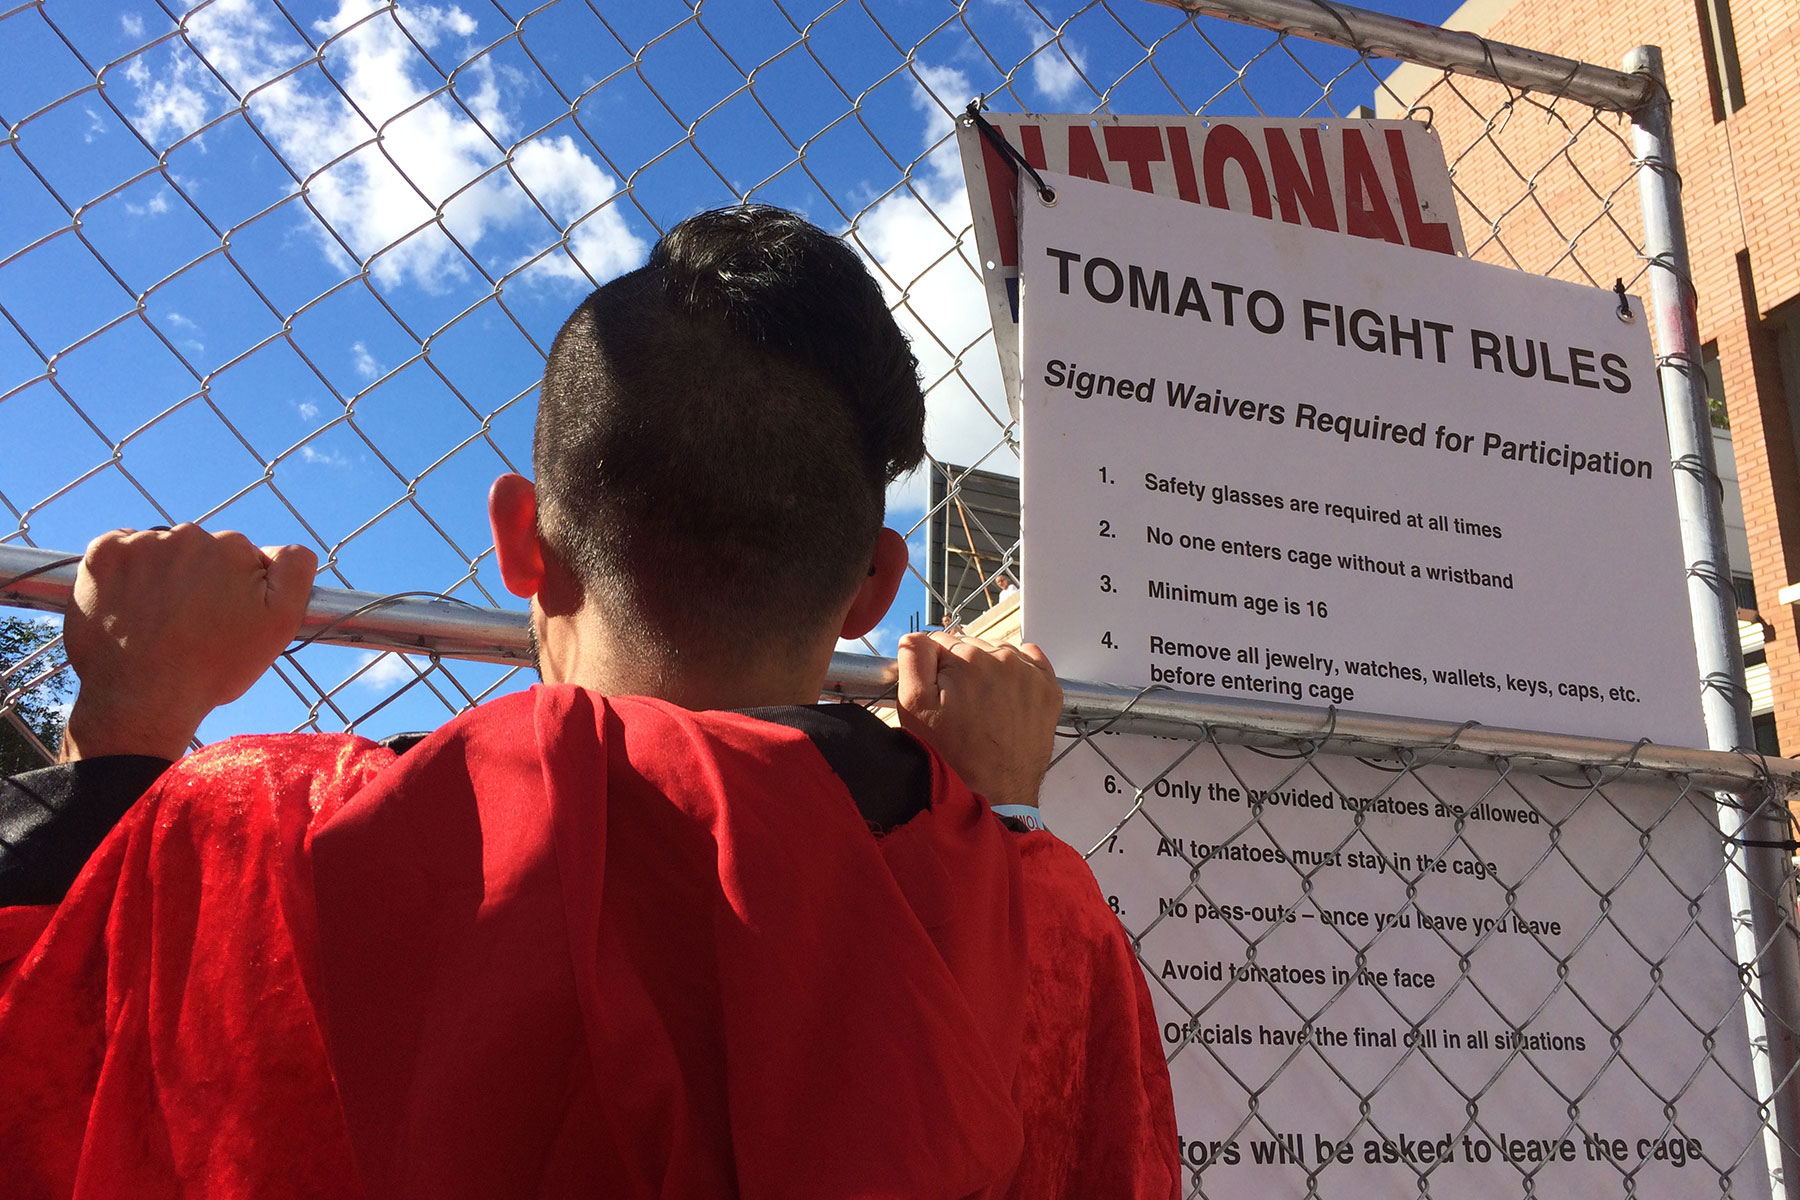 091216_tomato-romp-fights-to-end-hunger-in-east-side-community_014